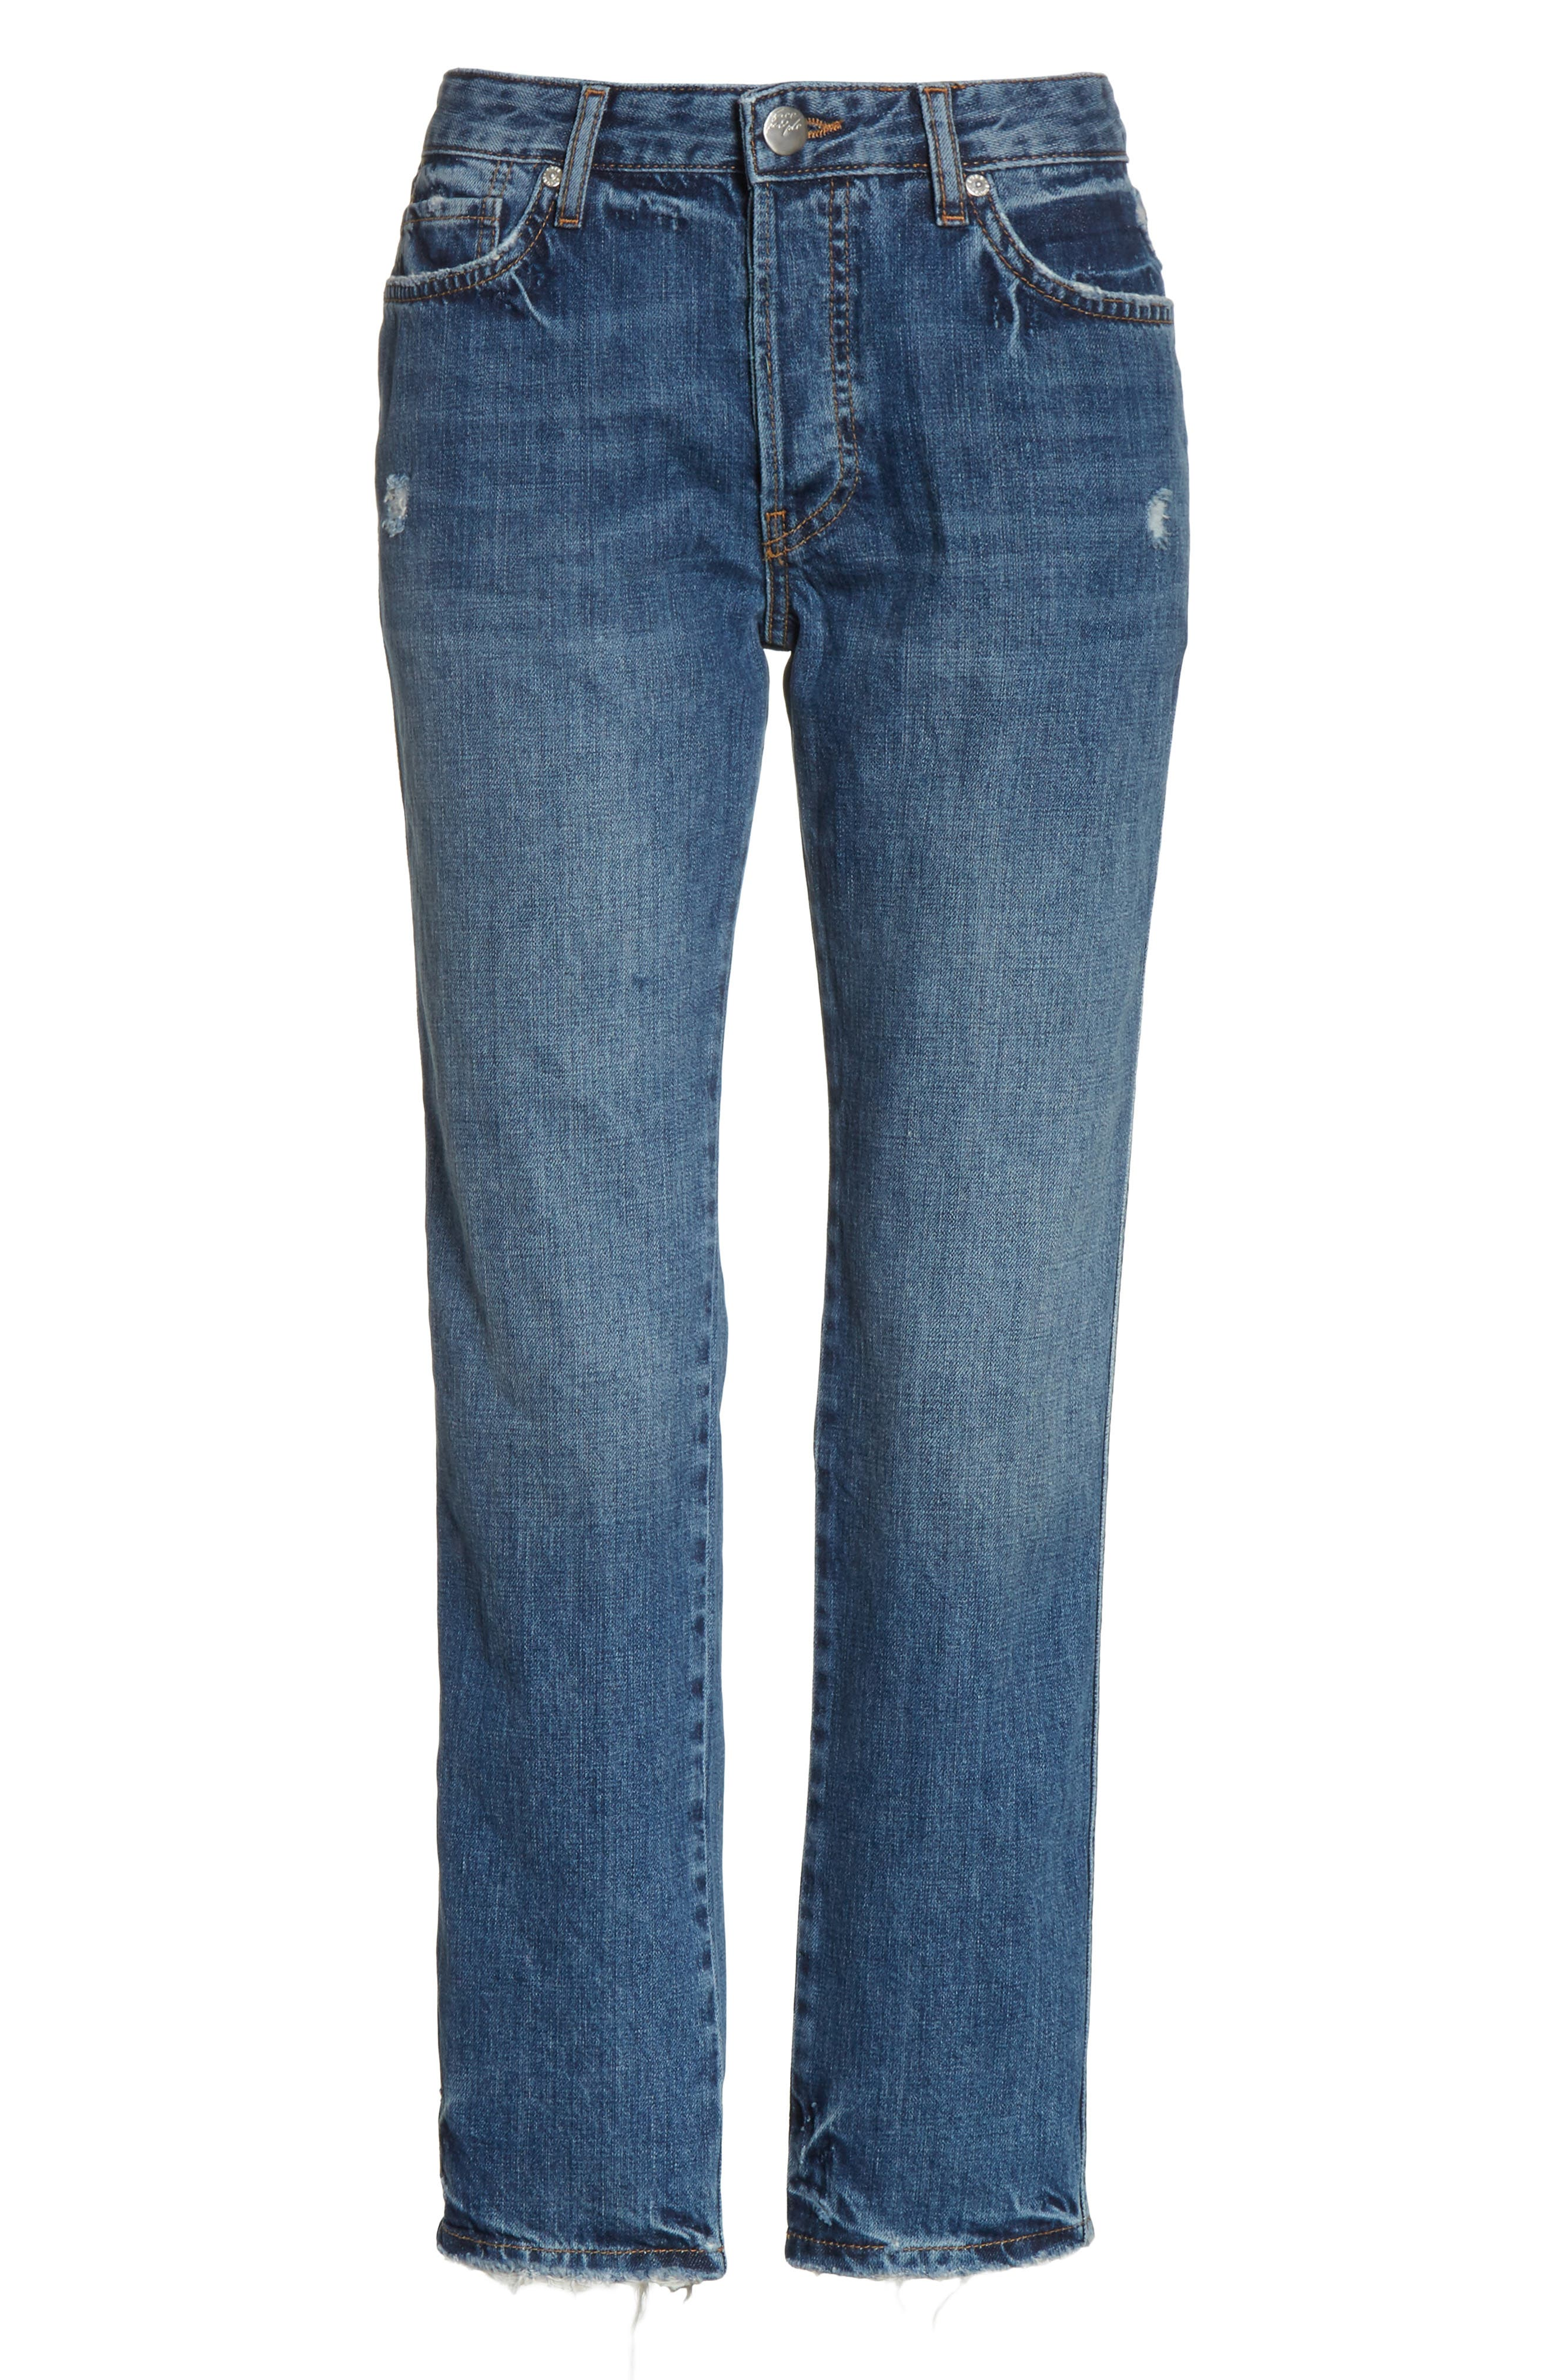 Slim Boyfriend Jeans,                             Alternate thumbnail 6, color,                             Blue